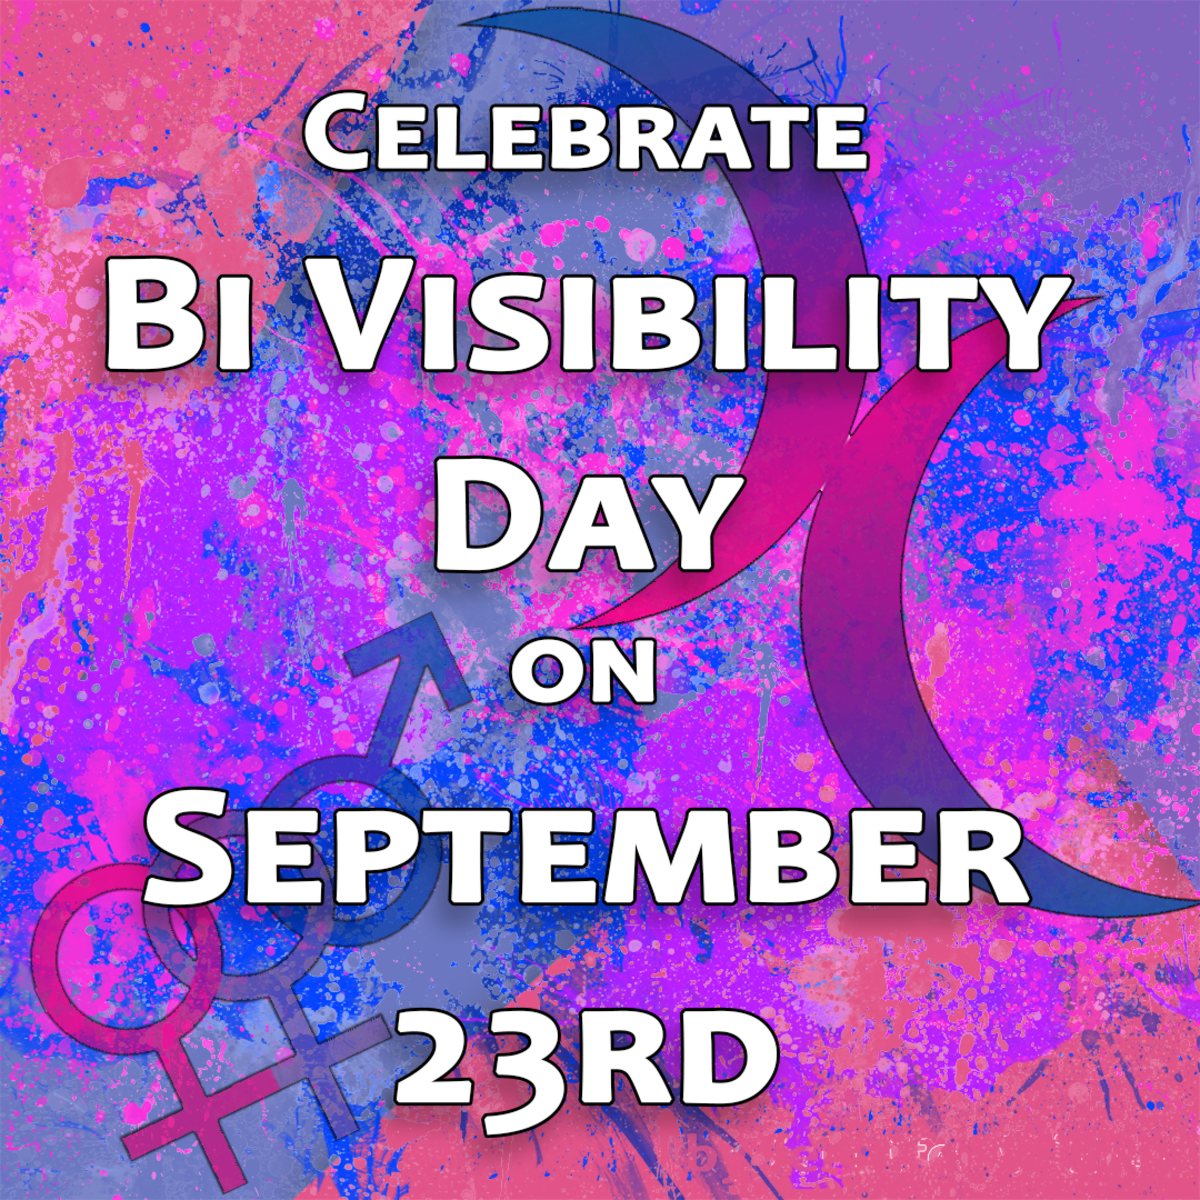 September 23rd is Bi Visibility Day